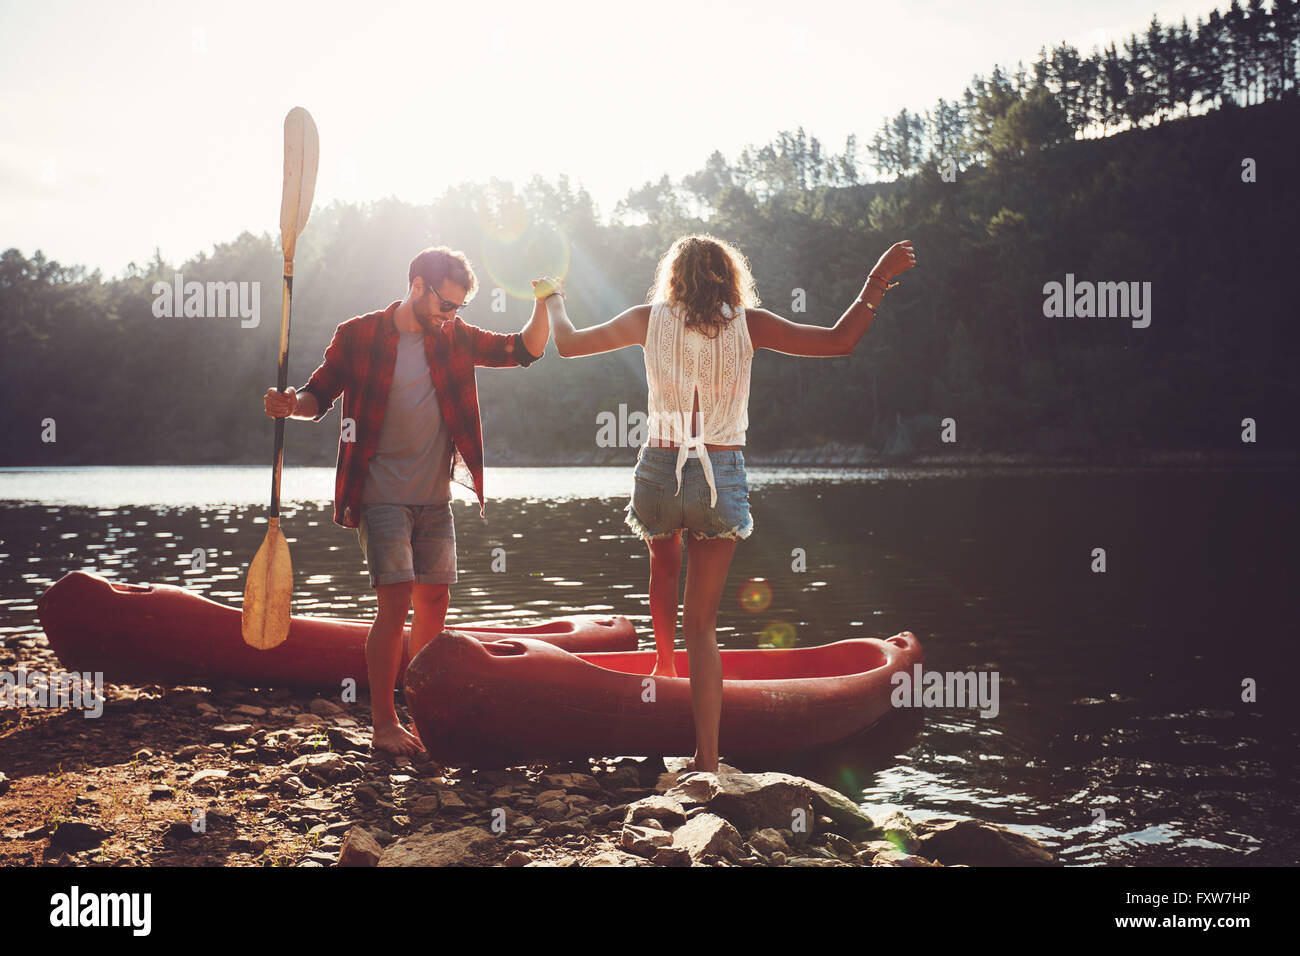 Young man helping woman to step into the kayak. Couple going for a canoe ride in the lake. - Stock Image